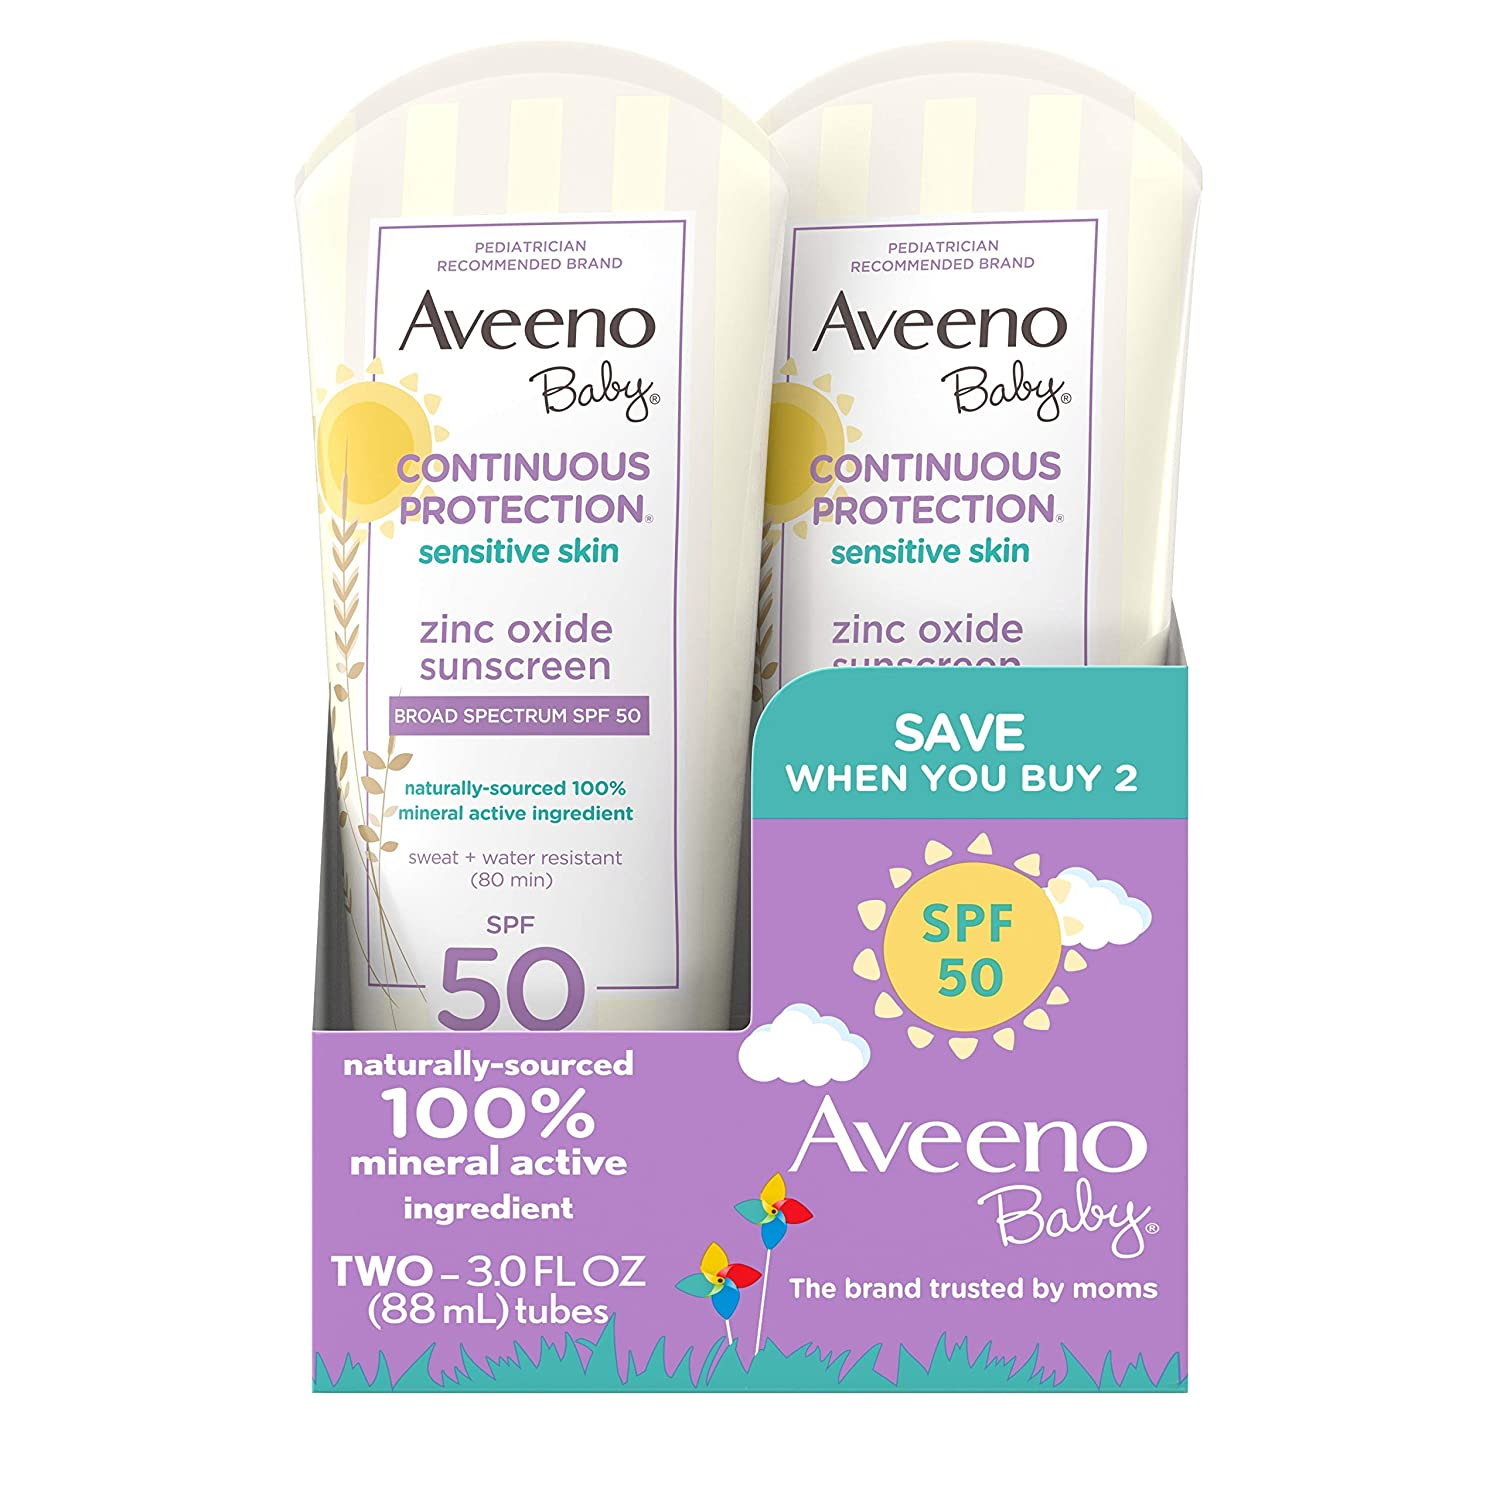 Aveeno Baby Continuous Protection Zinc Oxide Mineral Sunscreen Lotion with Broad Spectrum SPF 50, Sweat and Water Resistant, 3 fl. Oz, Pack of 2